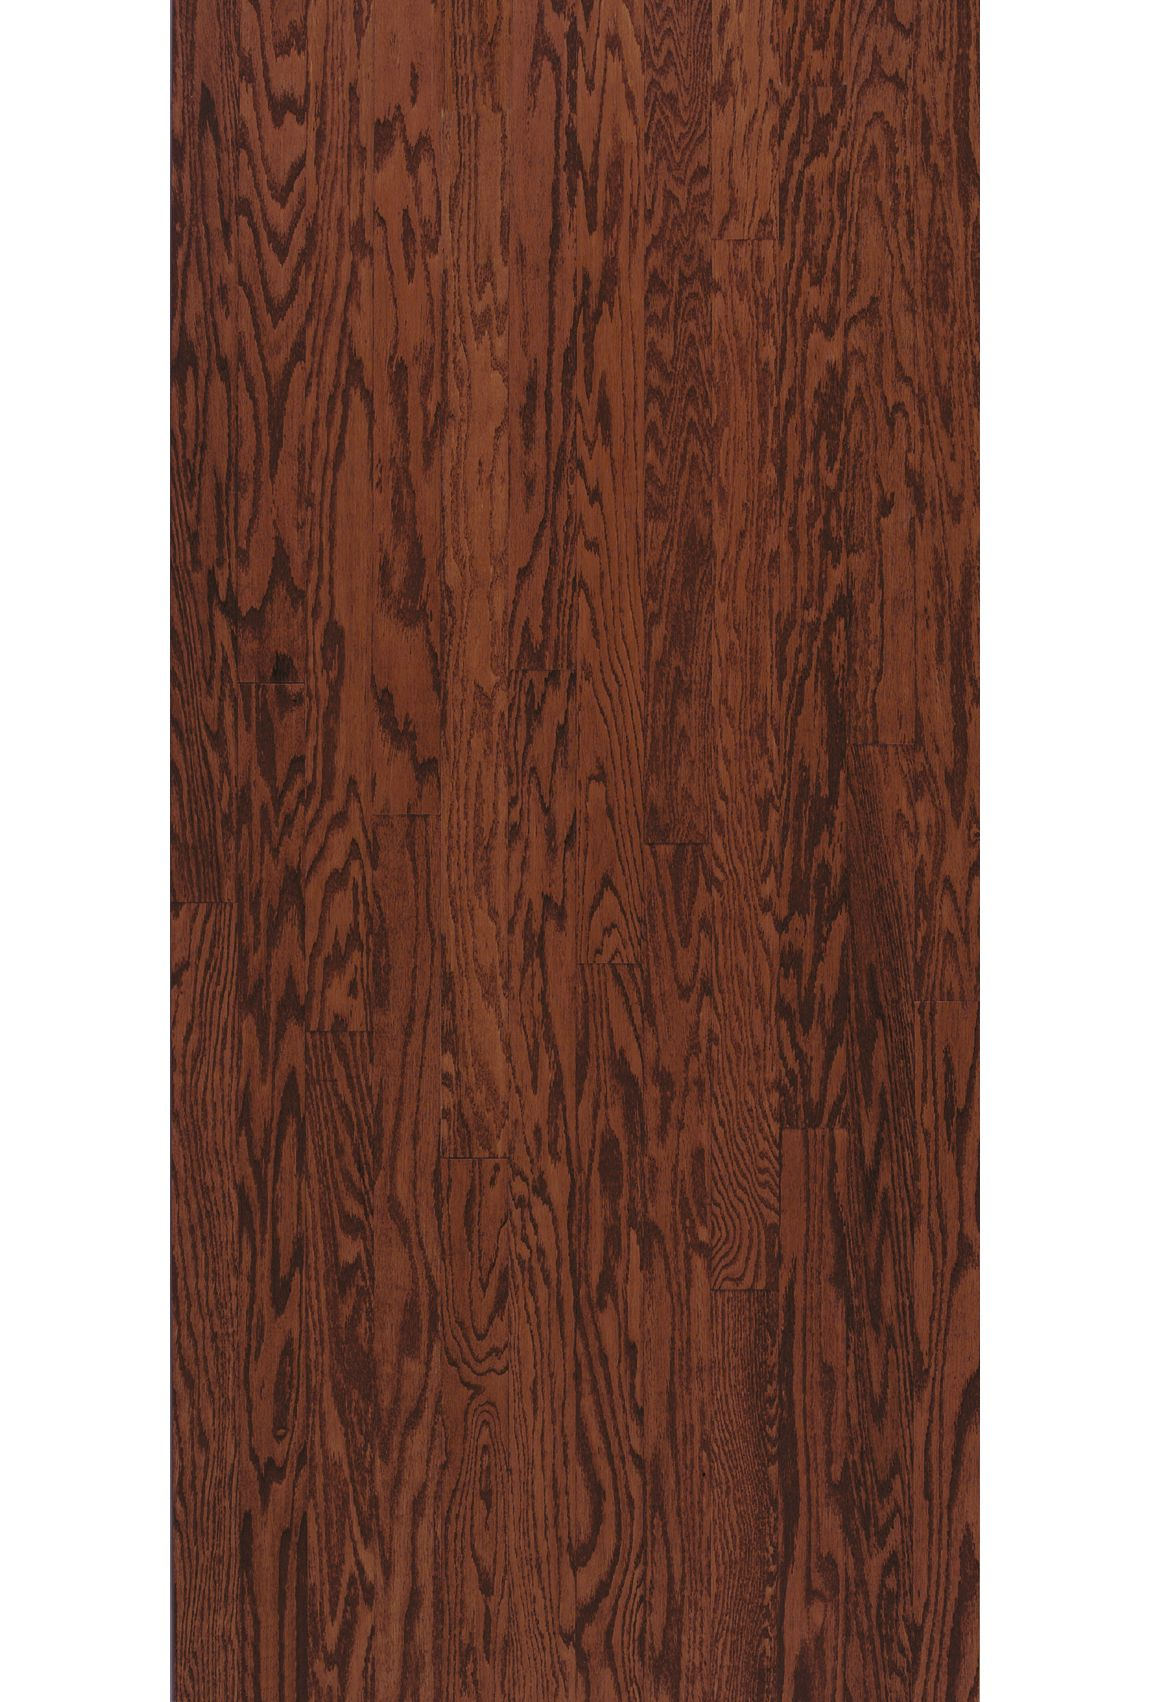 floors pricing hardwood bruce collection oak floor turlington discount woodstock product